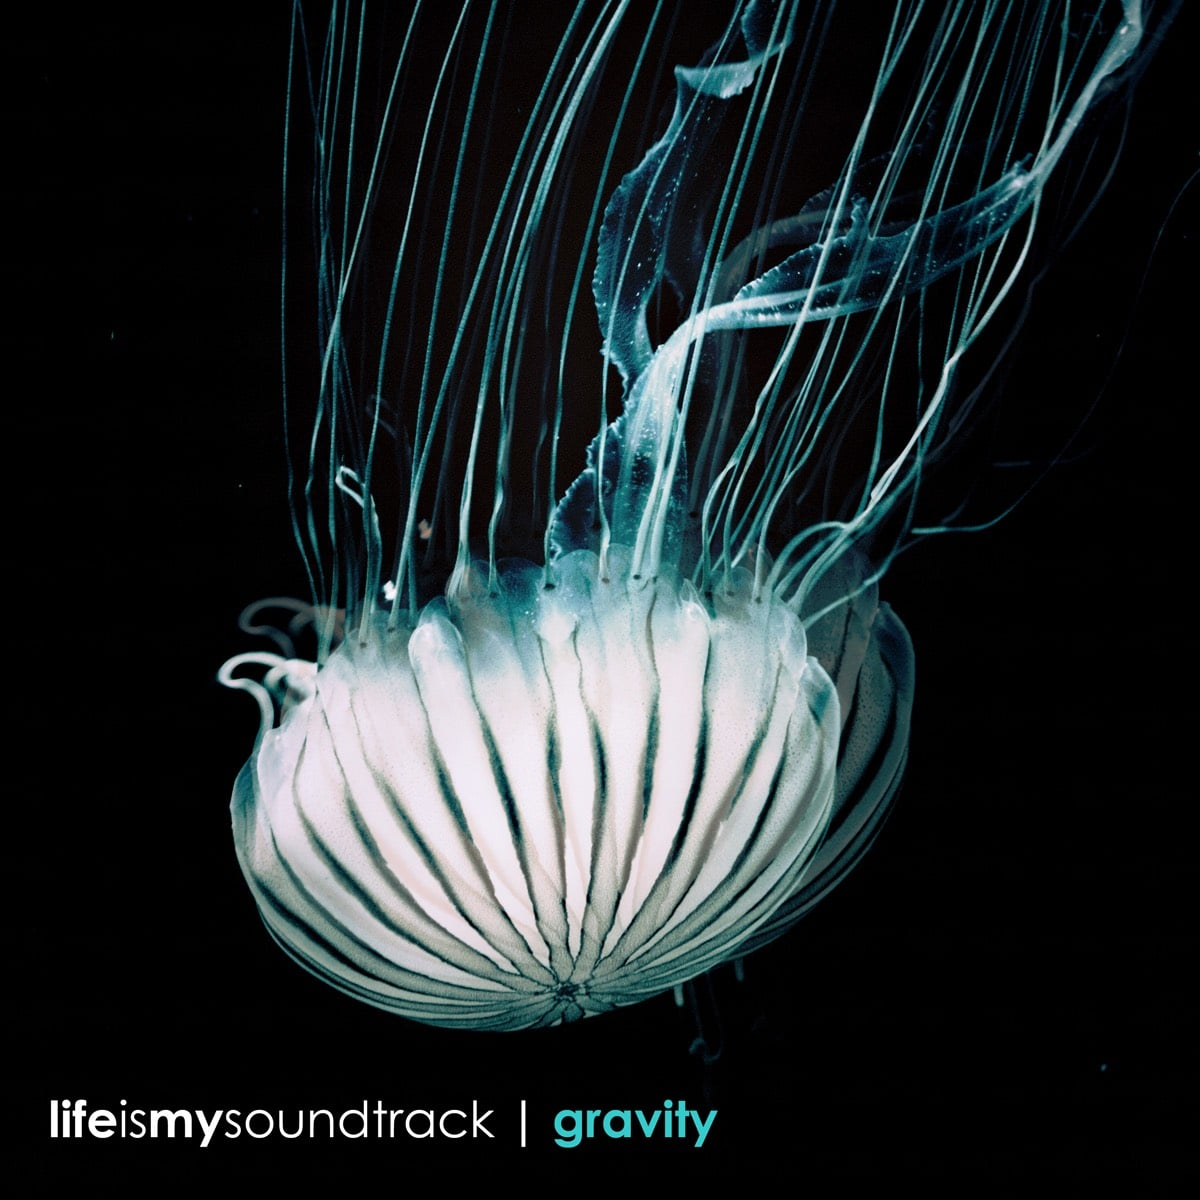 The album Gravity by Life Is My Soundtrack - Let the gravity wash over you